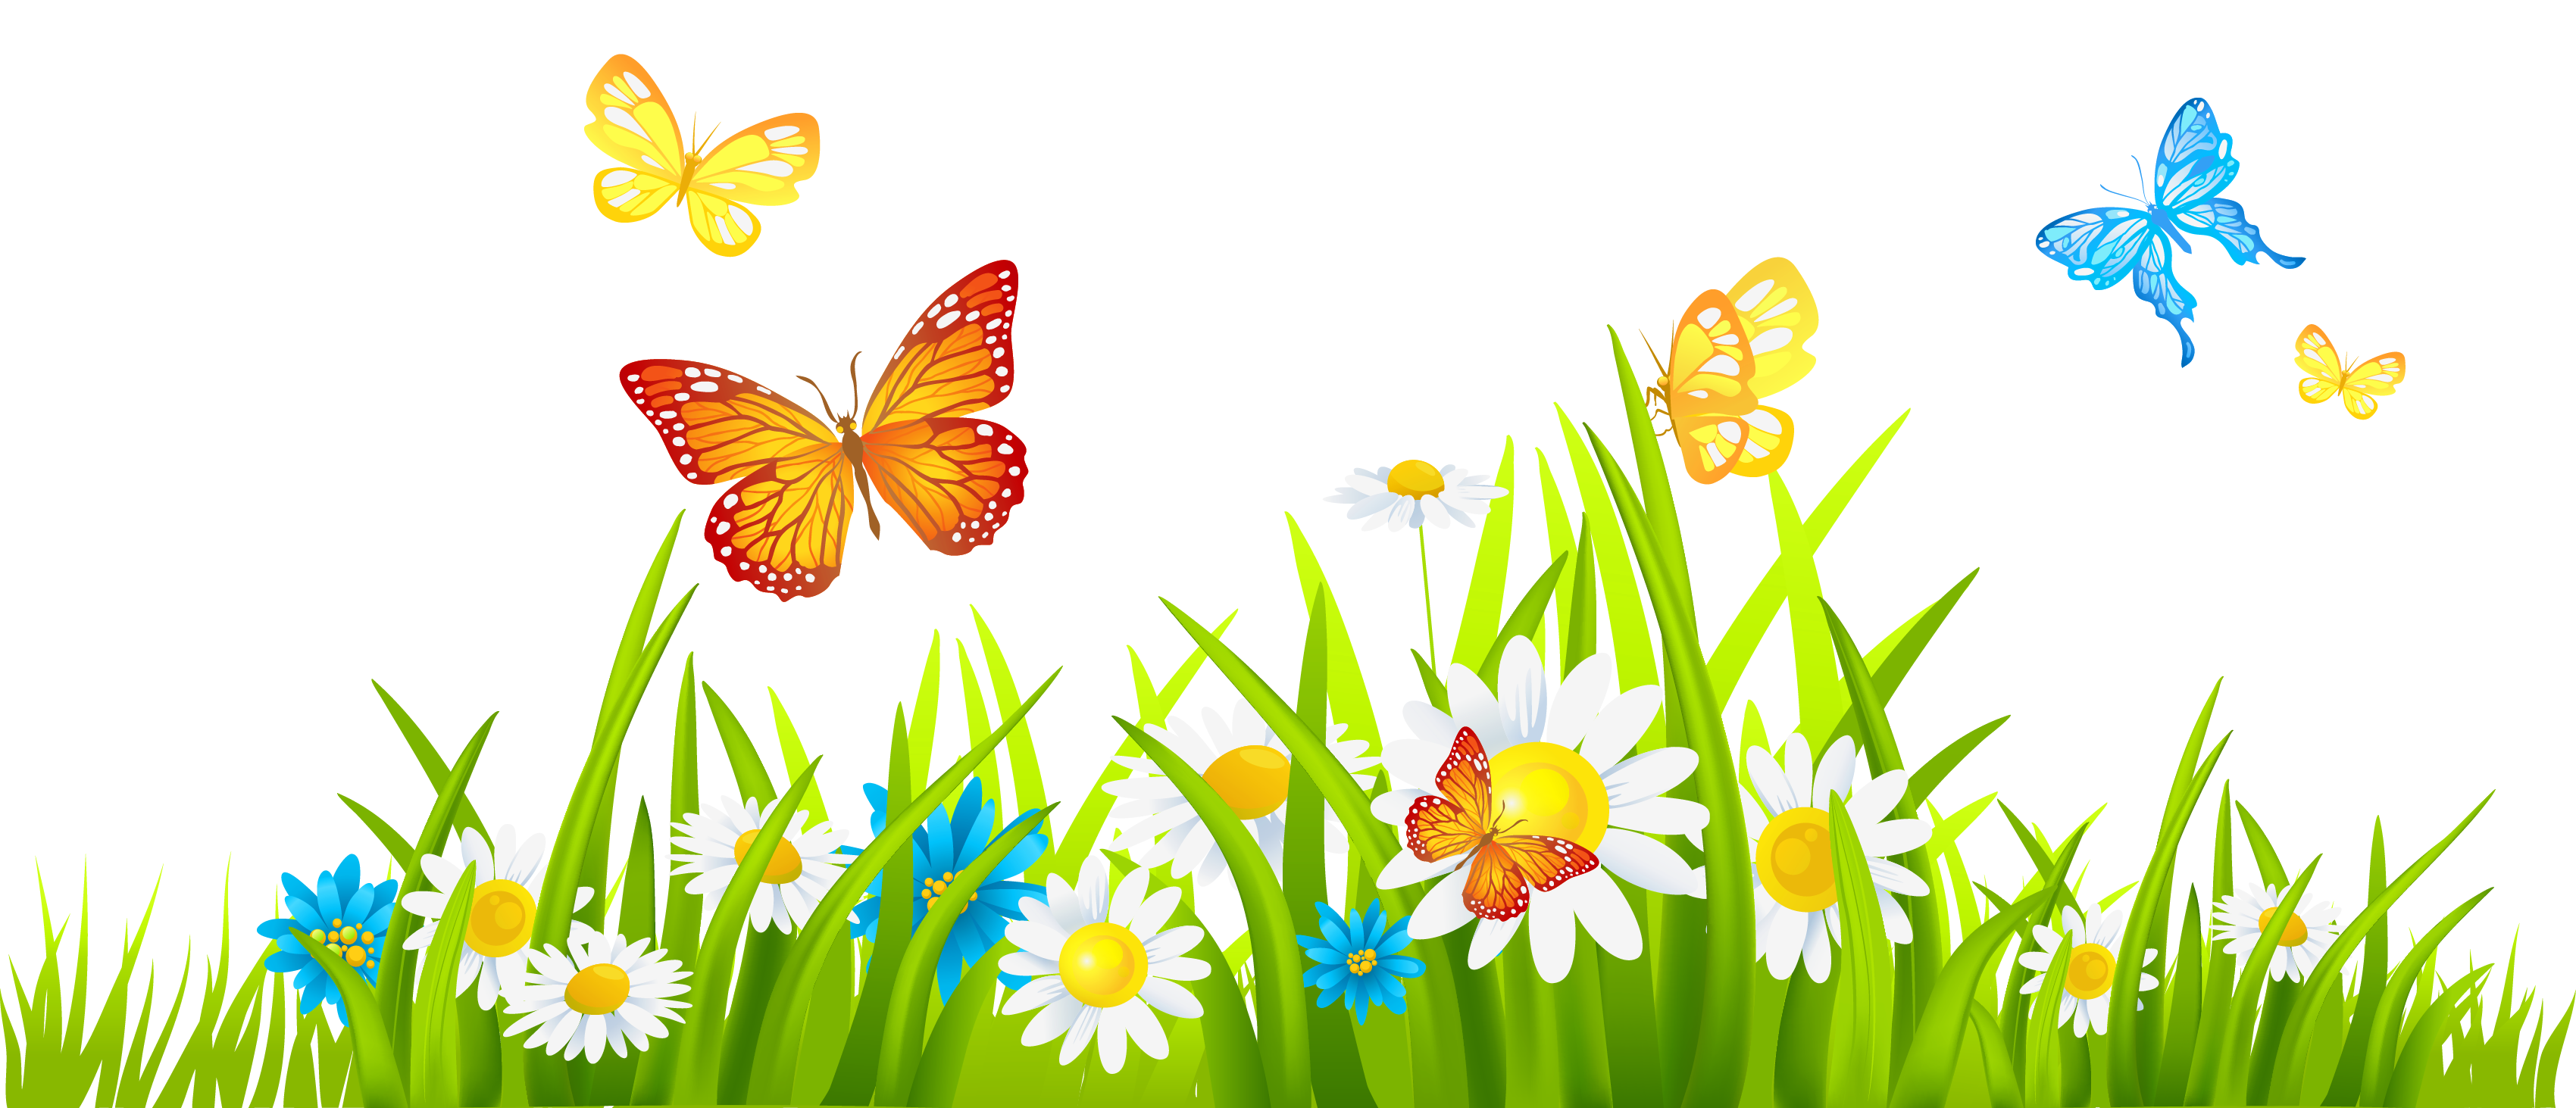 Grass and flowers clip art free clipart images clipartwiz clipartix